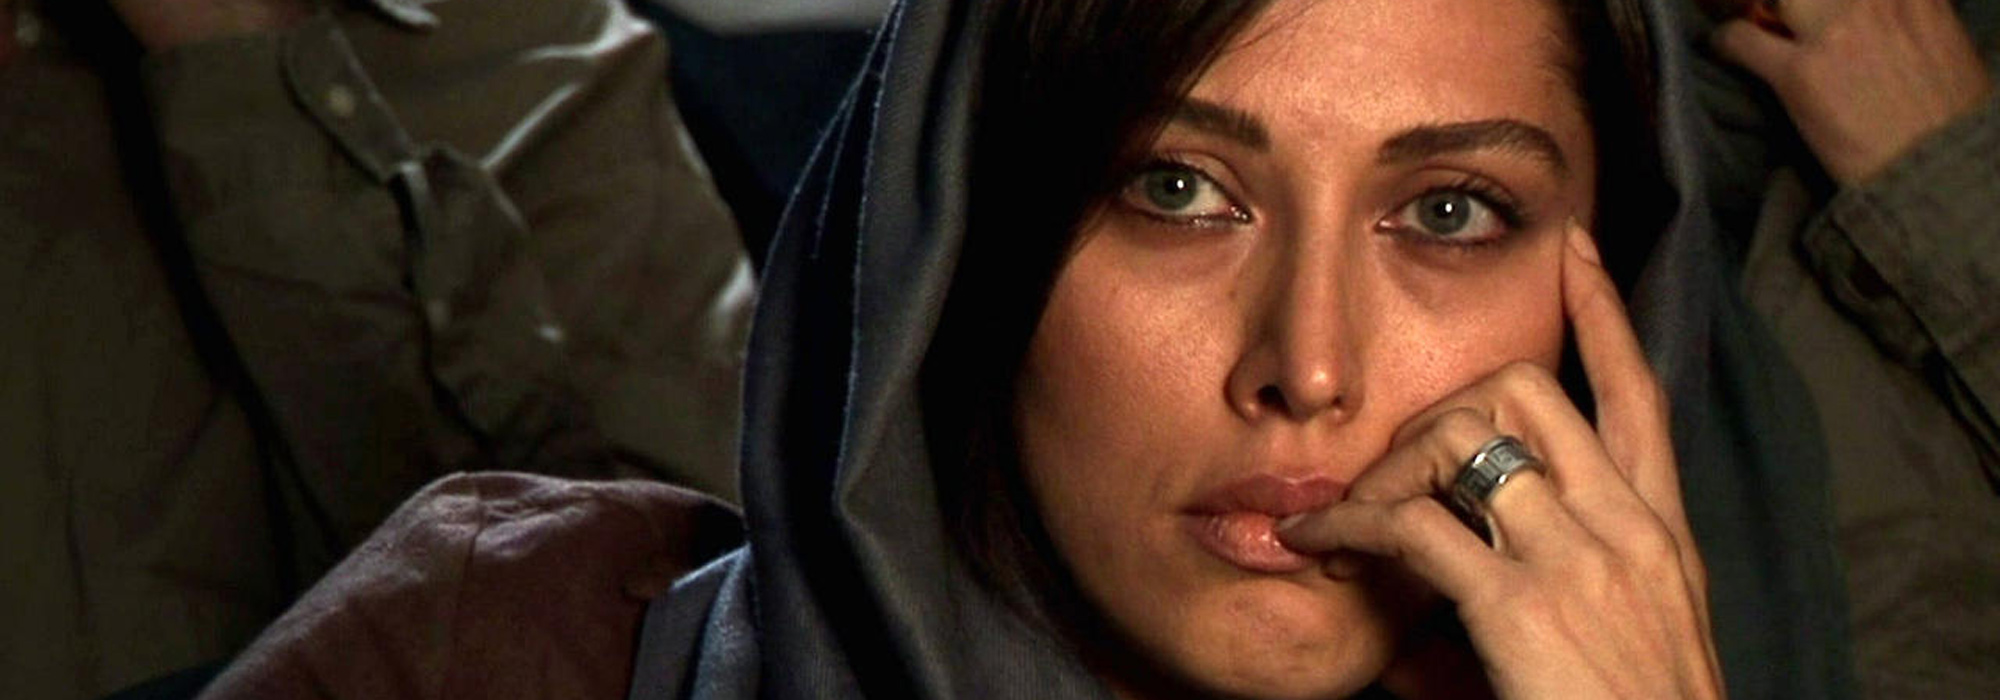 The women in Abbas Kiarostami's cinema